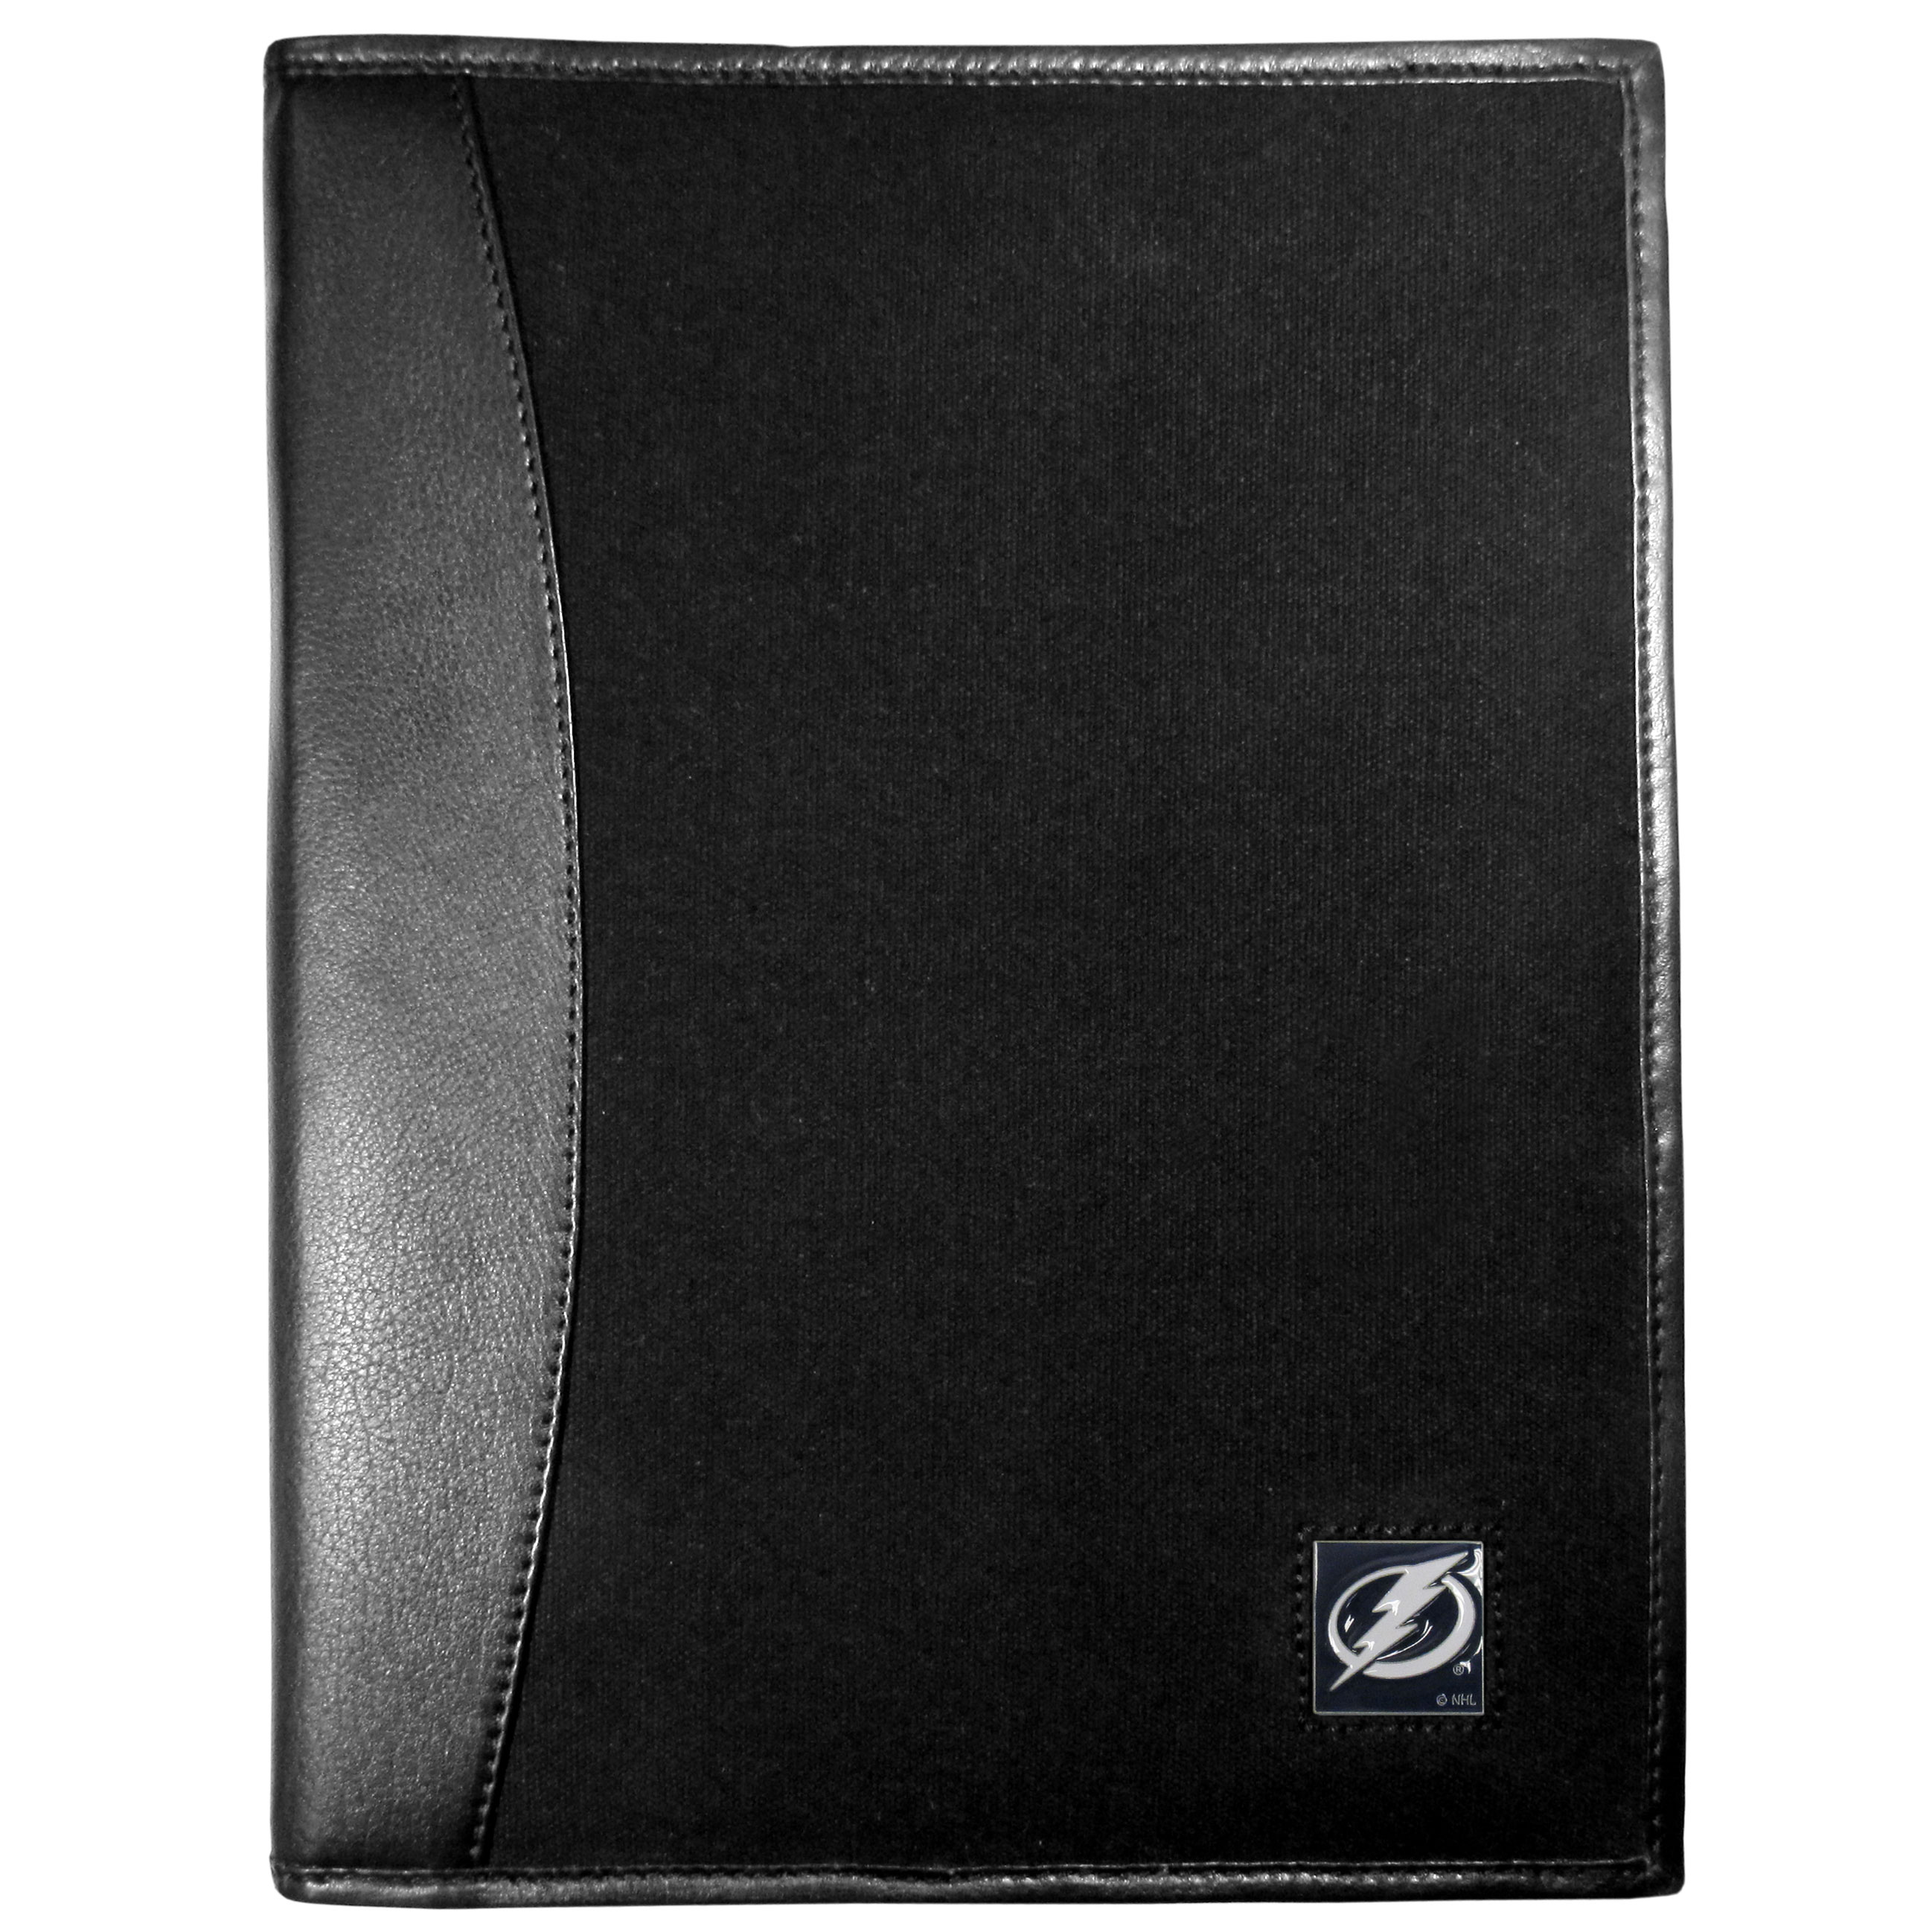 Tampa Bay Lightning® Leather and Canvas Padfolio - Our leather and canvas padfolio perfectly blends form and function. The attractive portfolio is bound in fine grain leather with an attractive canvas finish and the interior is a soft nylon. This high quality business accessory also features a fully cast metal Tampa Bay Lightning® emblem that is subtly set in the corner of the organizer. It is packed with features like 6 card slots for badges, business cards, hotel keys or credit cards and ID with a large pocket for loose papers and a writing tablet slot making it a must-have for the professional on the go.